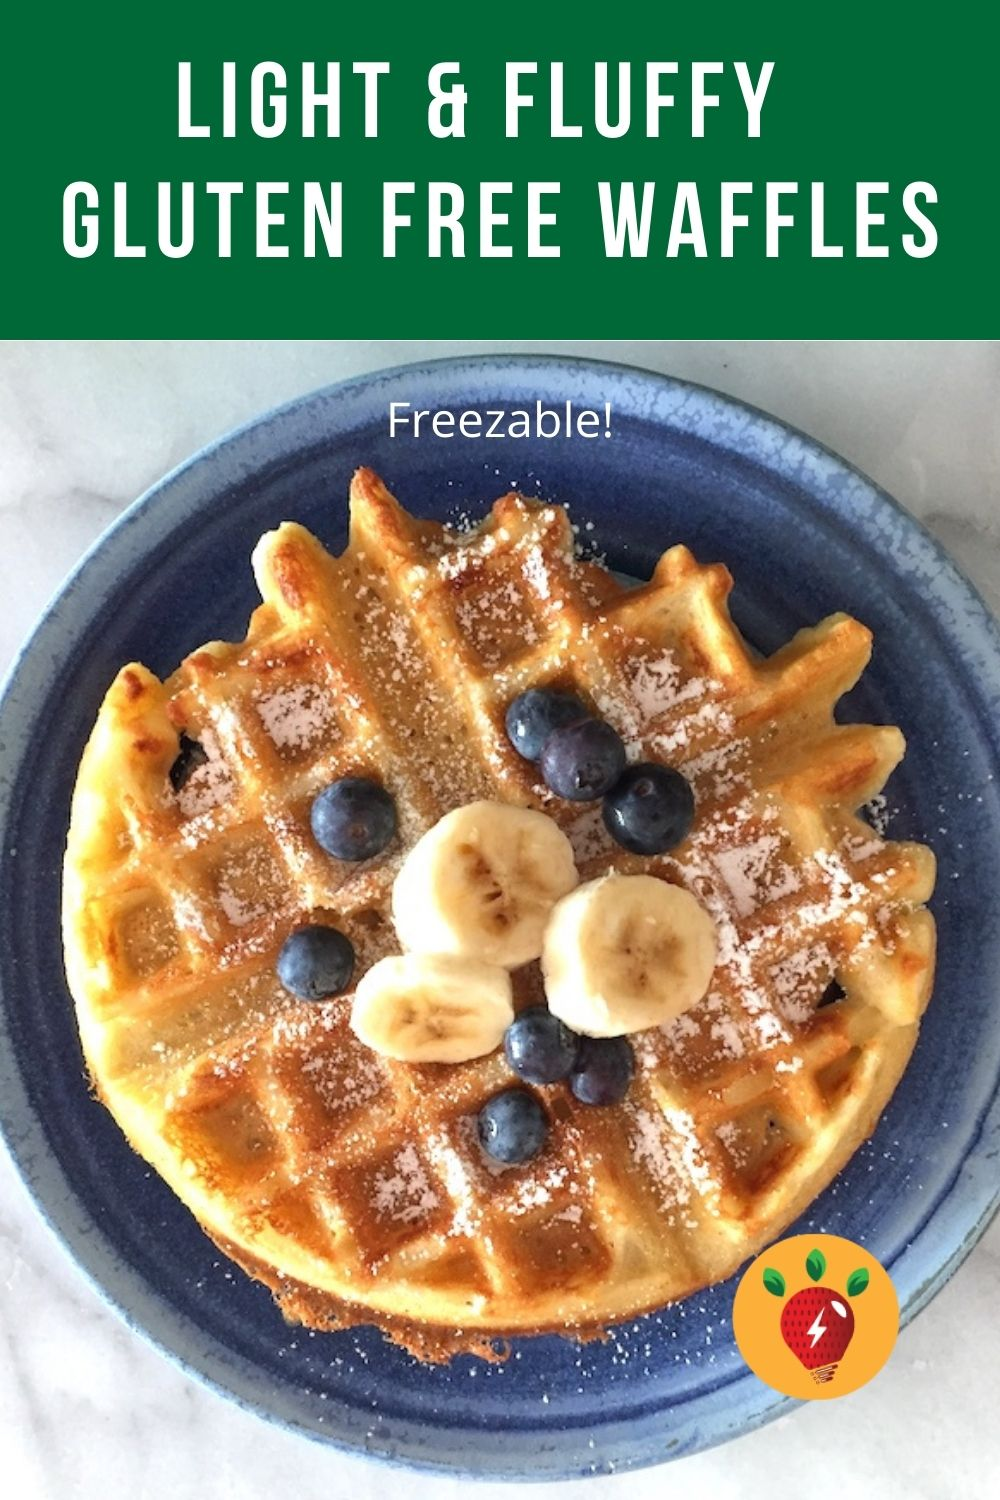 Light and fluffy gluten free waffles. These waffles are gluten free, FREEZABLE, and so delicious. #GlutenFreeWaffles #FreezableMeals #KidsFoods #GlutenFree #recipes #breakfast #ComfortFood #RecipeIdeaShop